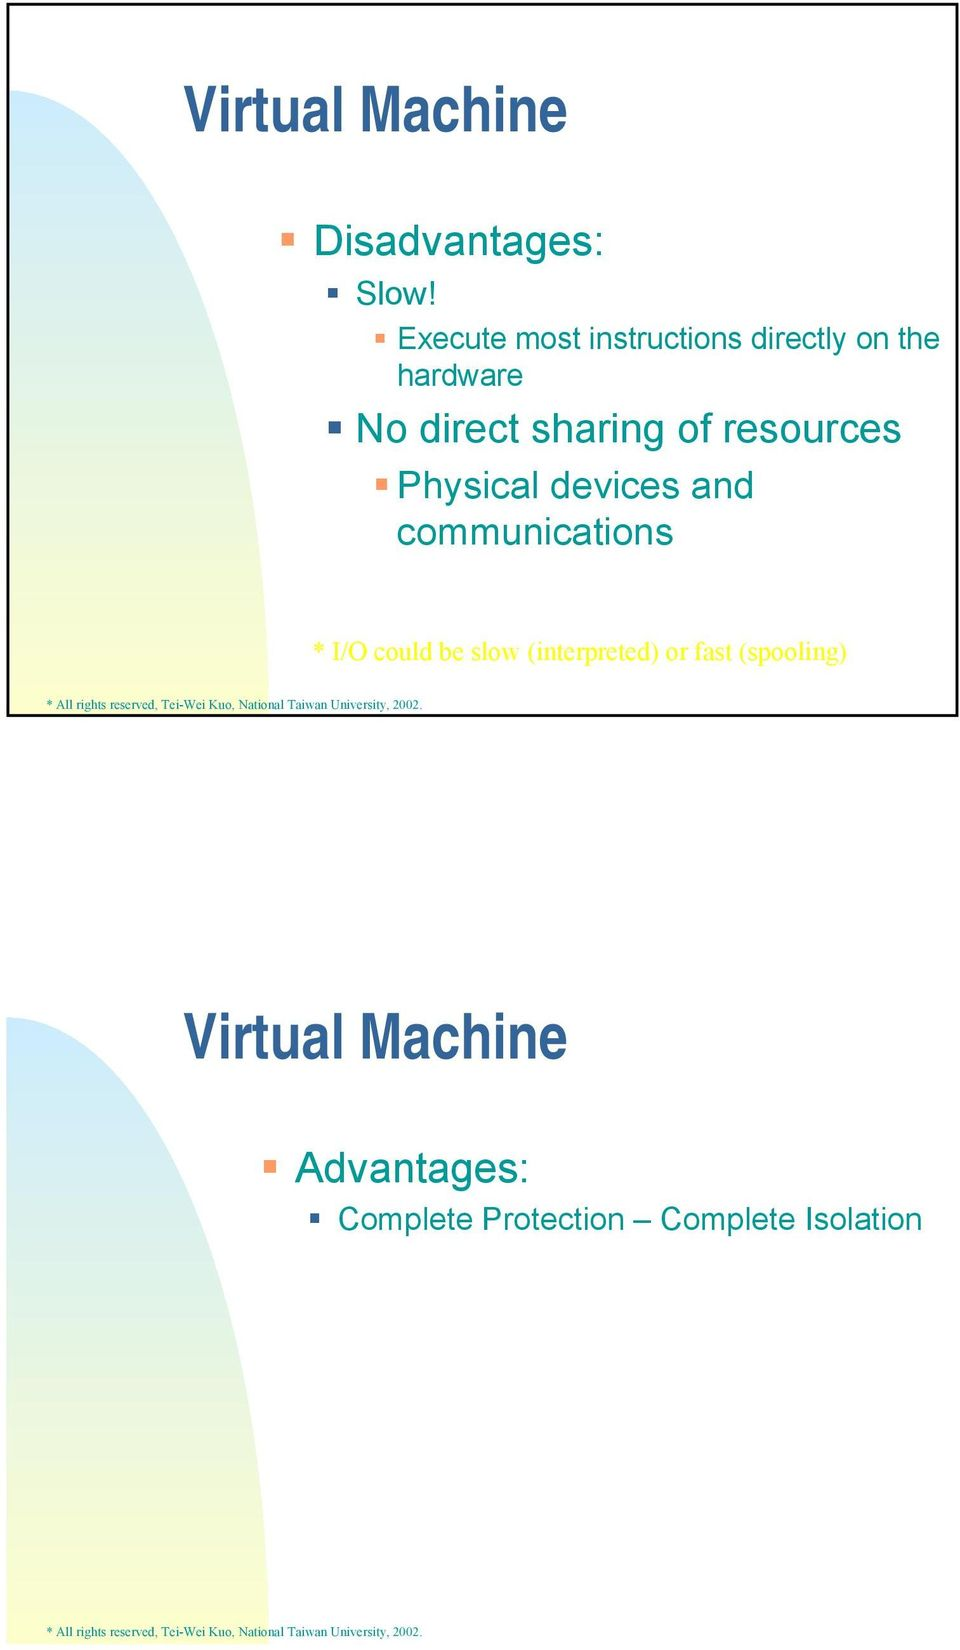 communications * I/O could be slow (interpreted) or fast (spooling) Virtual Machine Advantages: Complete